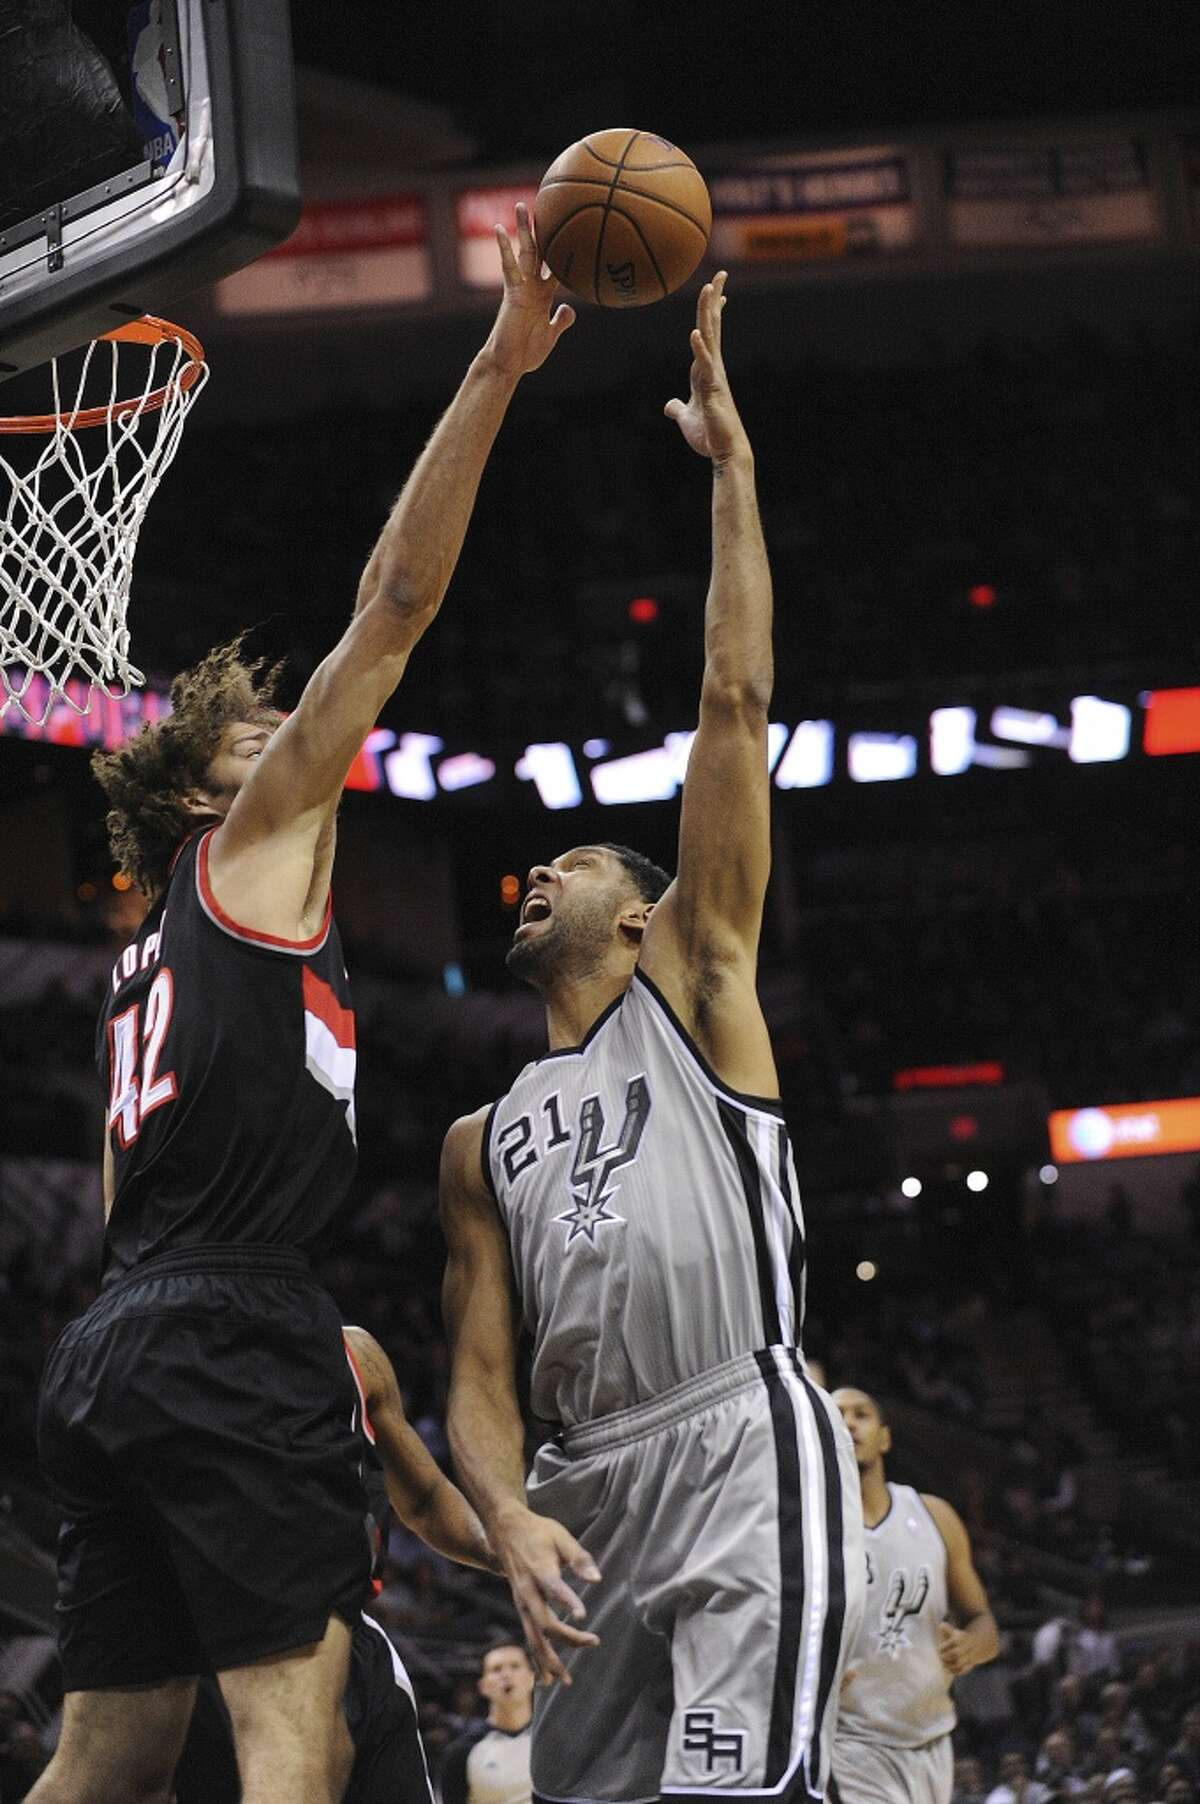 Tim Duncan (21) of the San Antonio Spurs has a shot blocked by Robin Lopez (42) of the Portland Trailblazers during NBA action in the AT&T Center on Friday, Jan. 17, 2014.